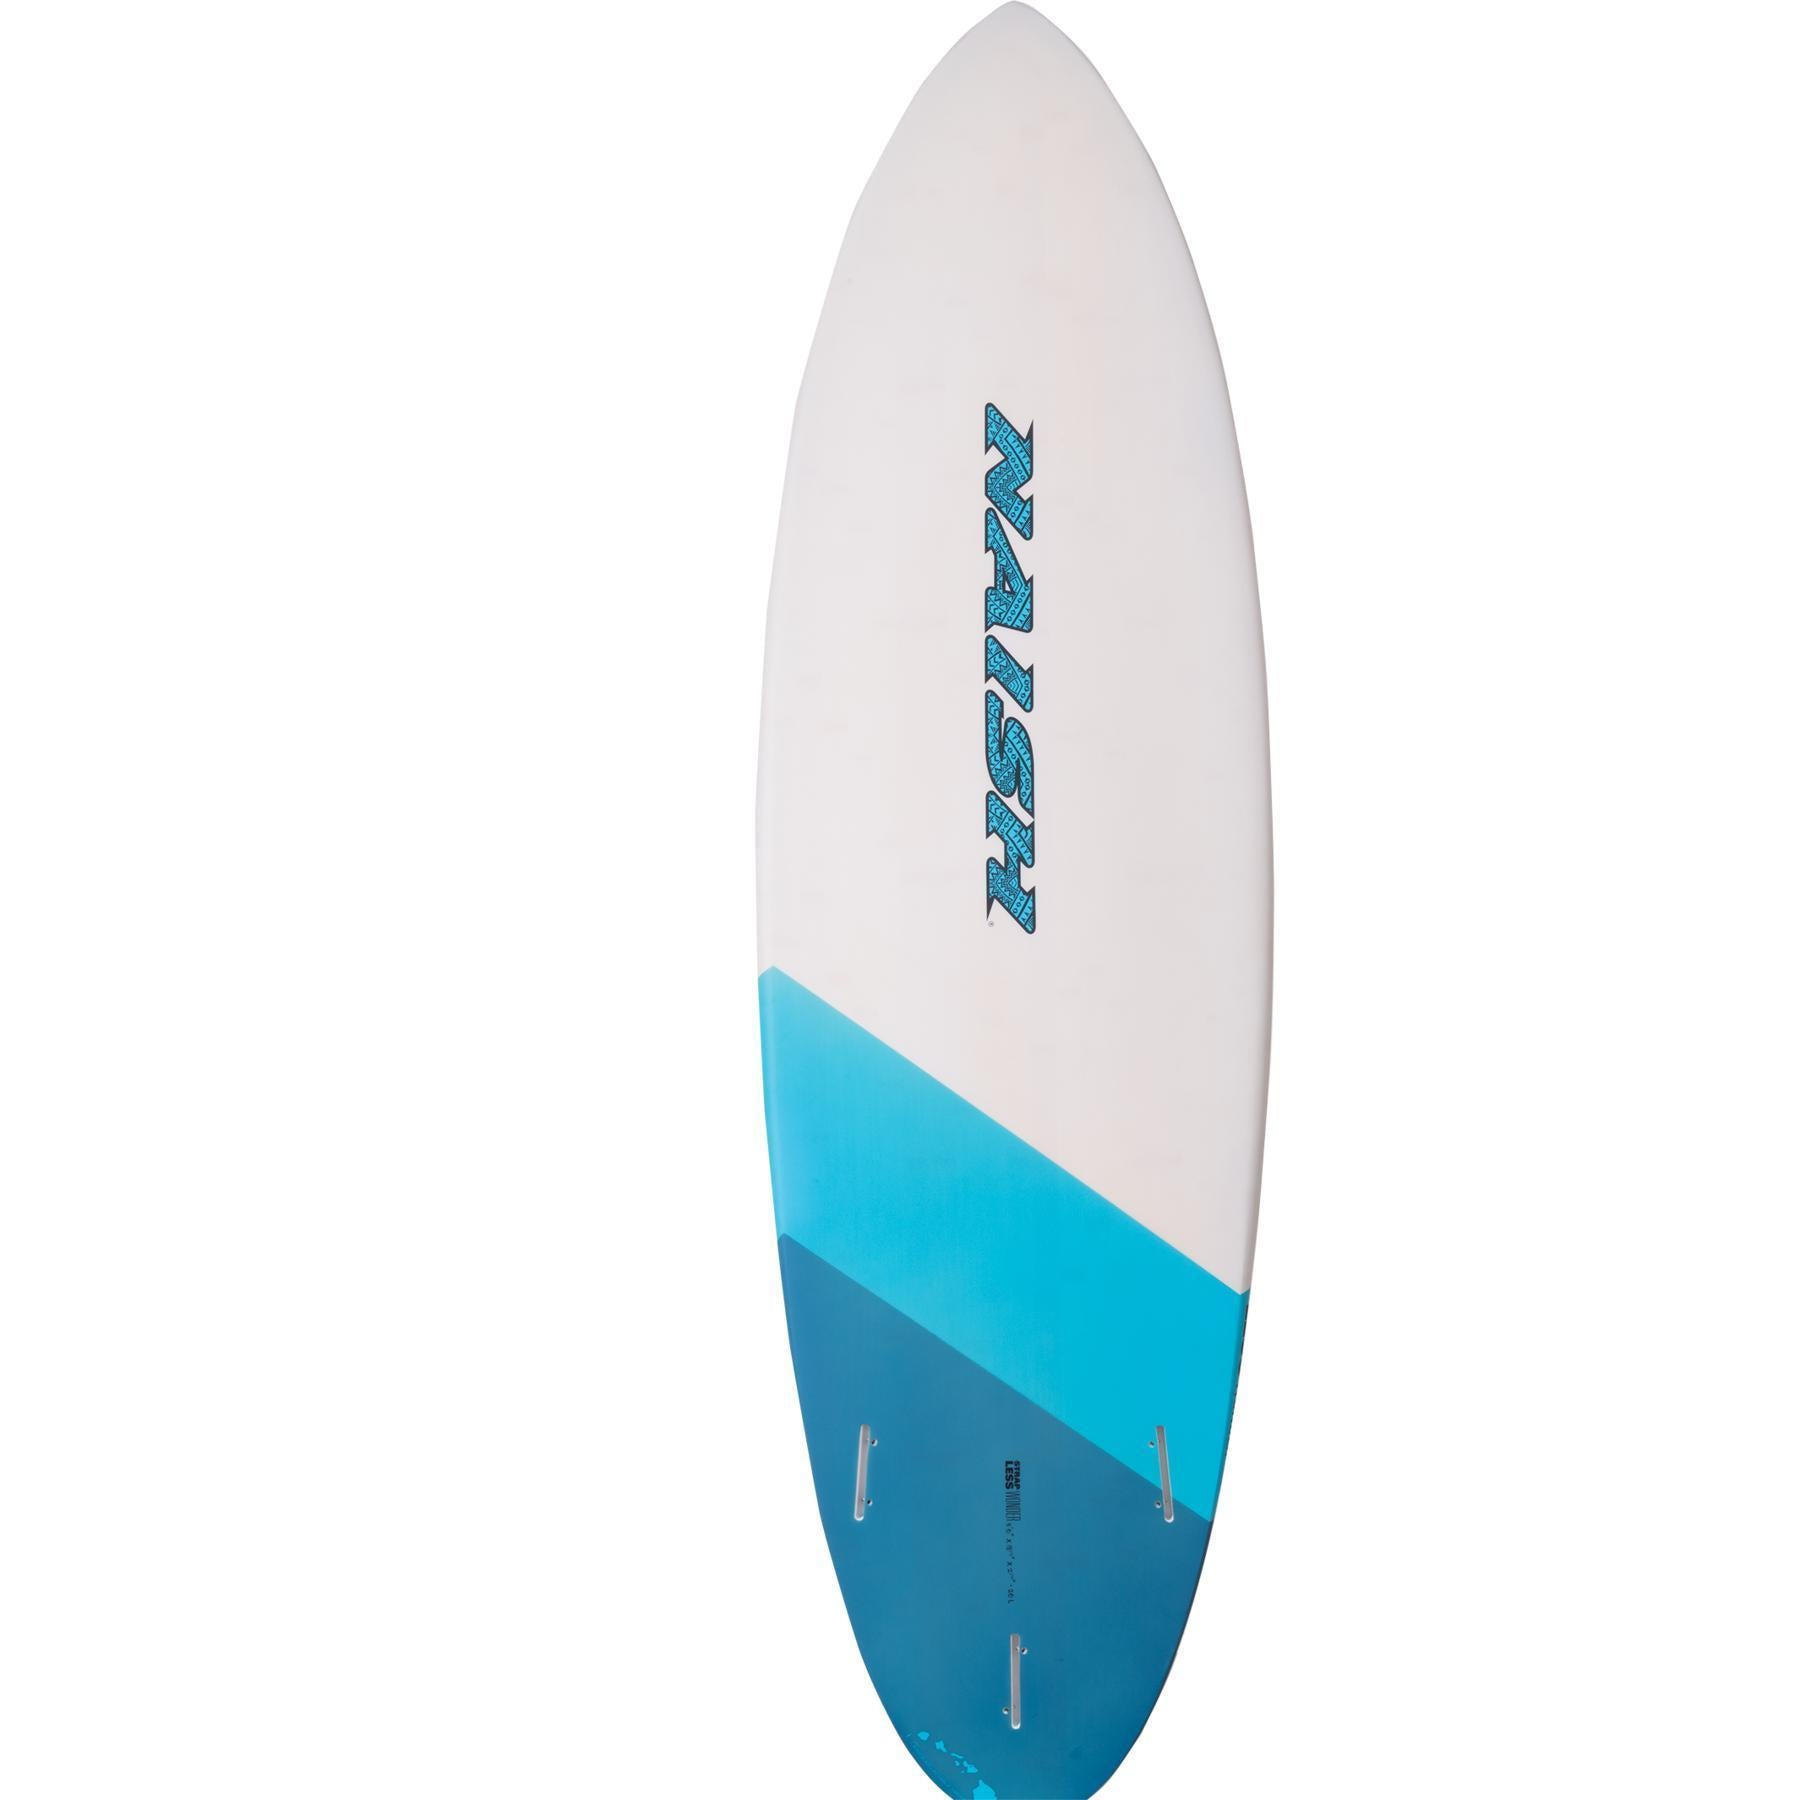 NAISH S25 STRAPLESS WONDER KITE SURFBOARD-Big Winds